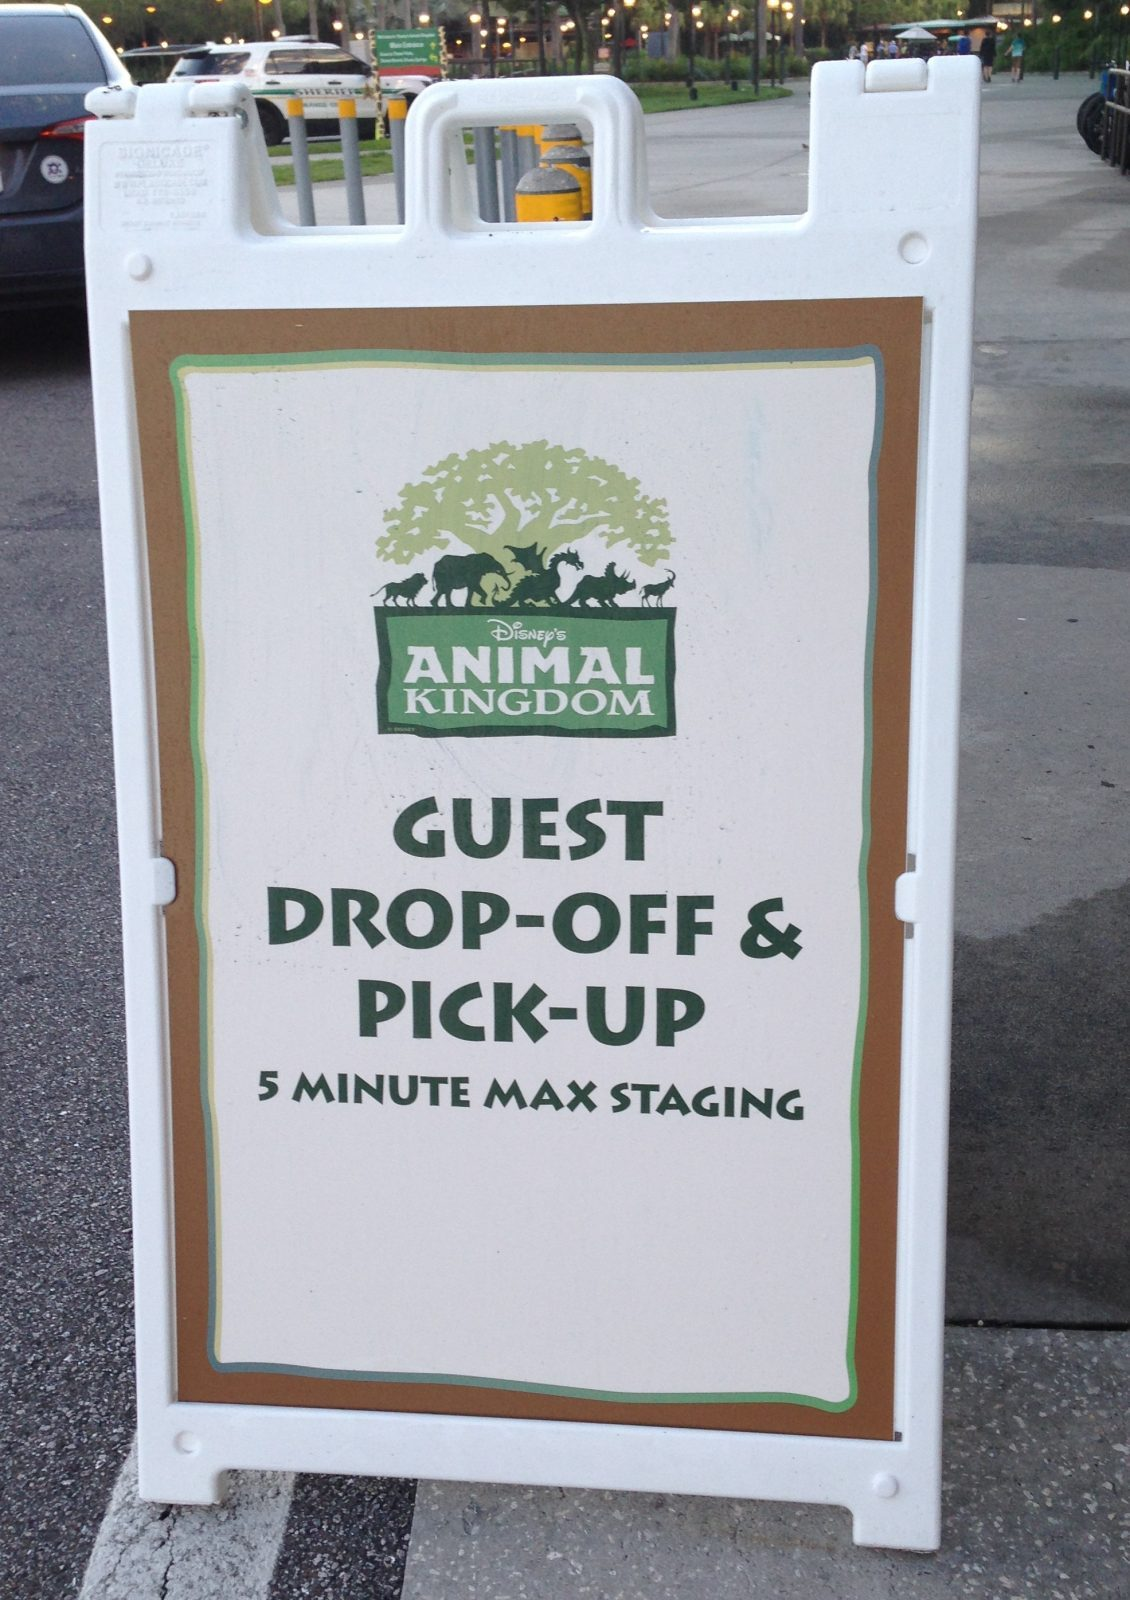 guest pick-up signage at Animal Kingdom